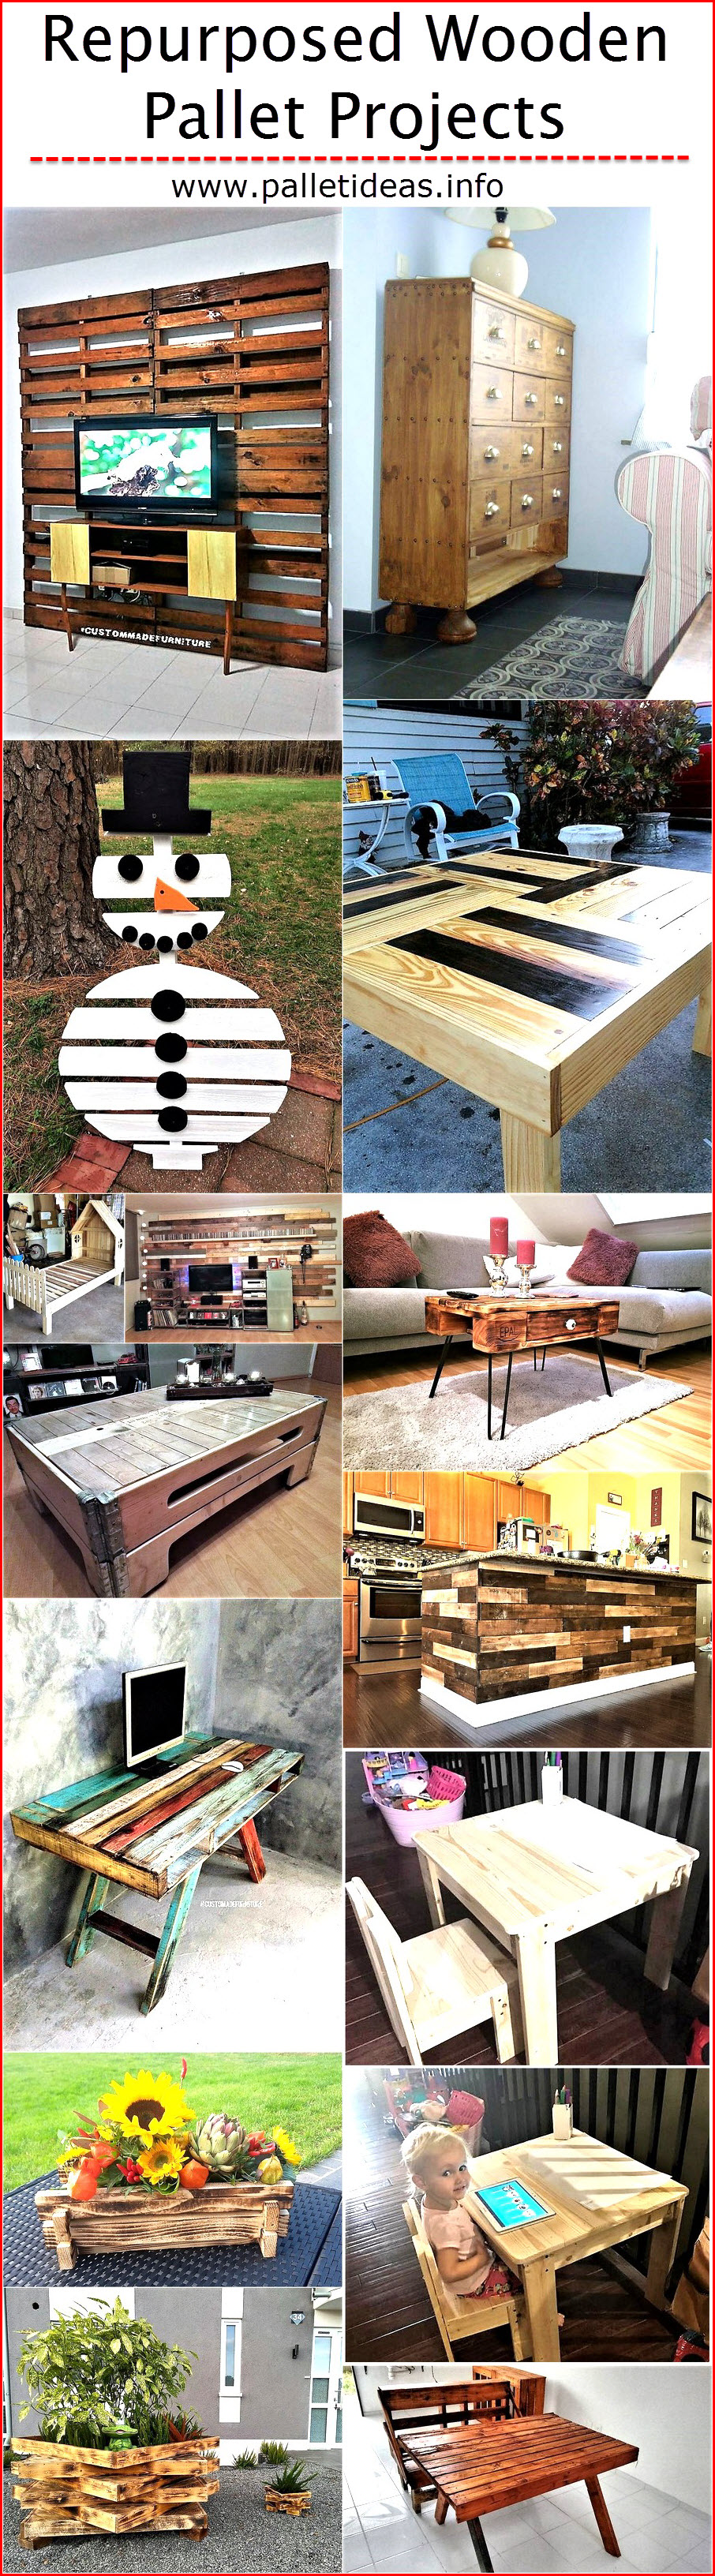 repurposed-wooden-pallet-projects